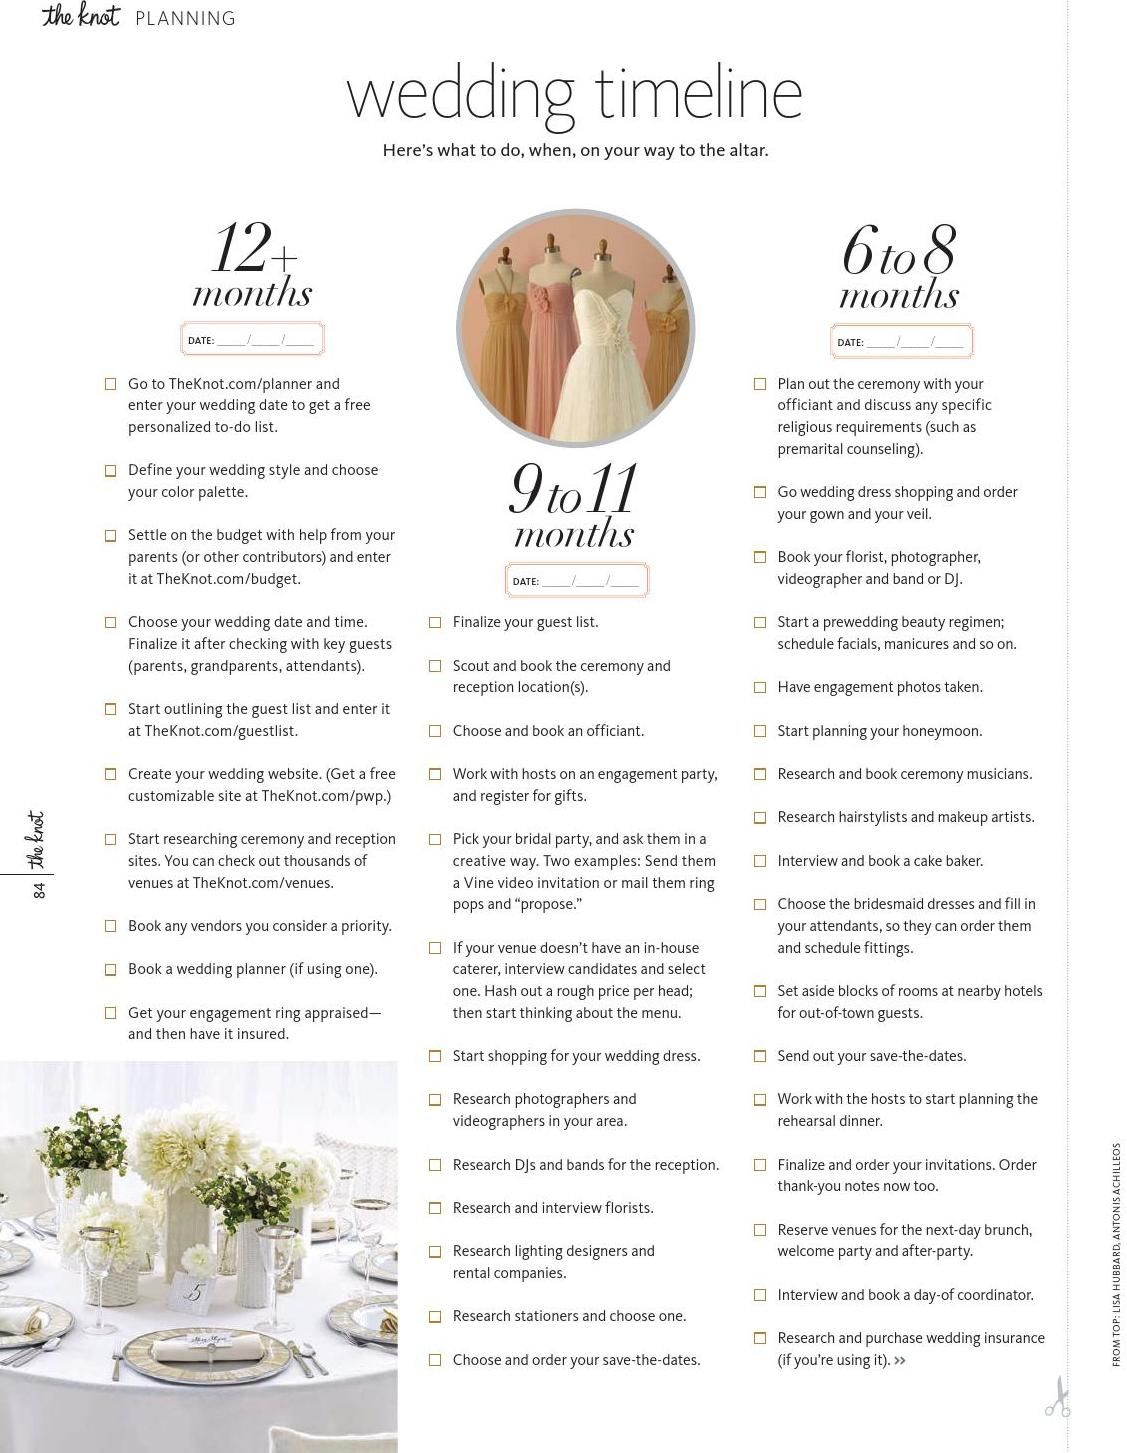 The Knot Summer 2014 Wedding timeline, Wedding checklist